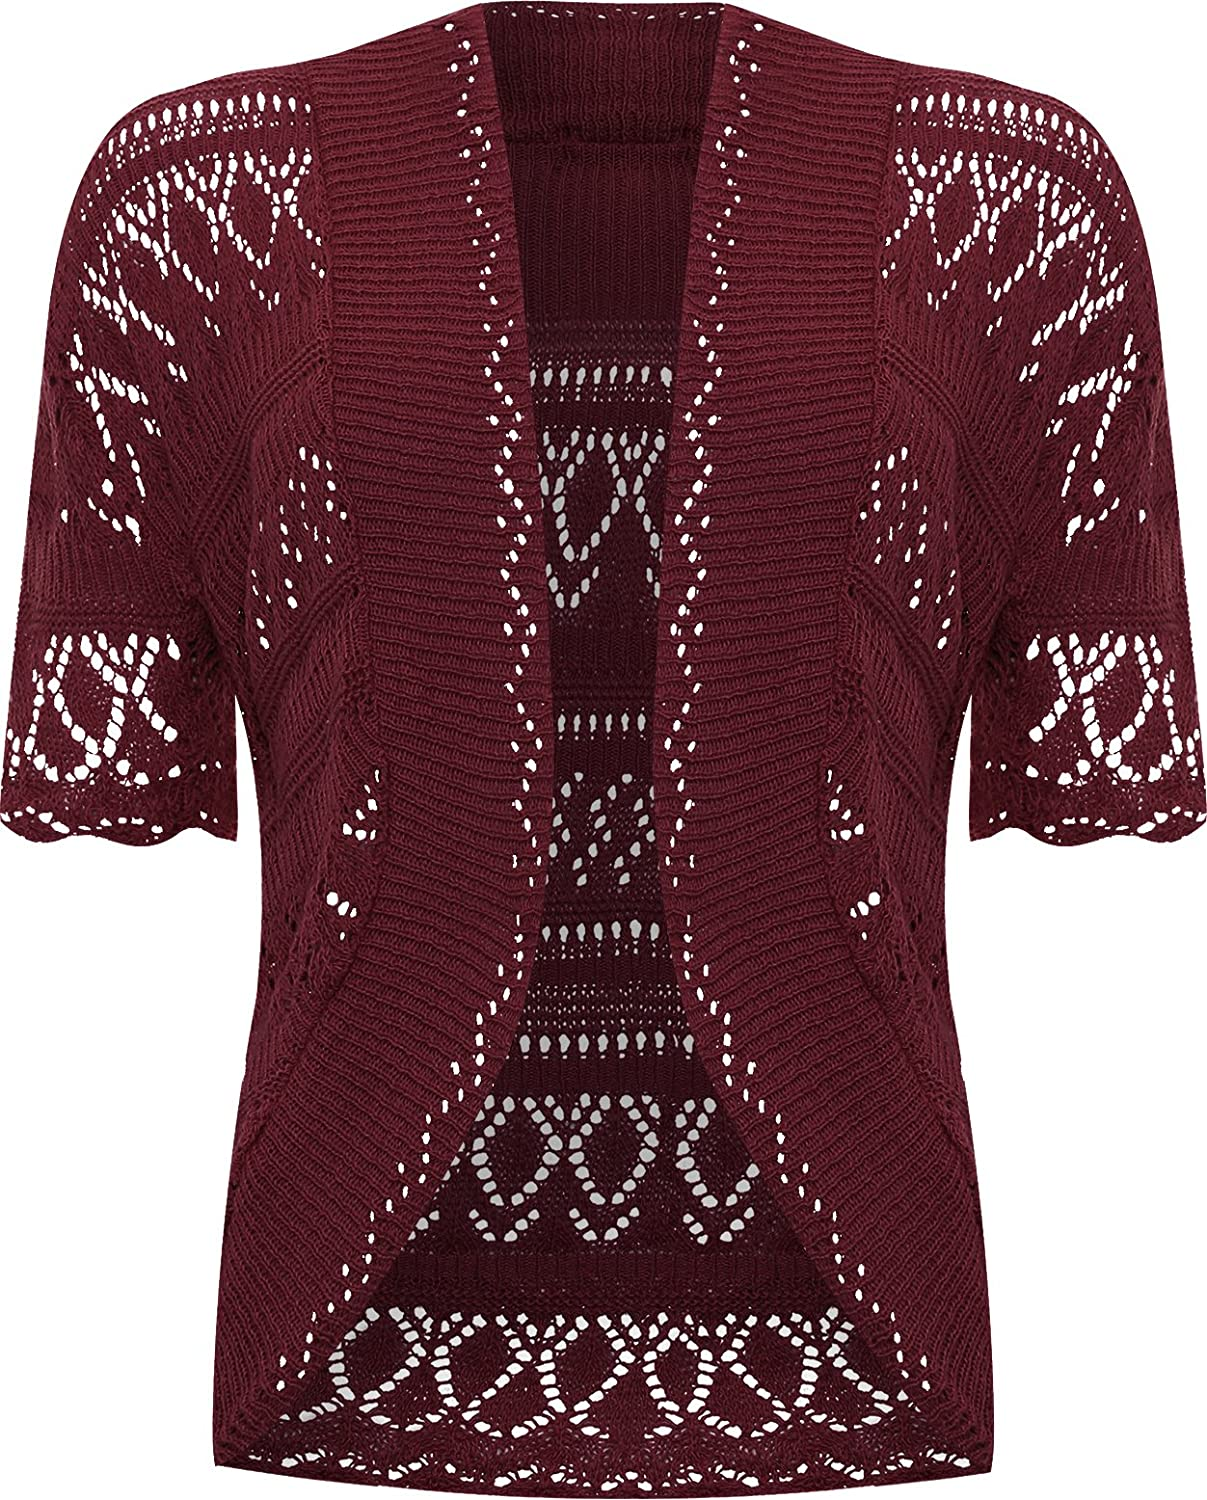 WearAll Plus Size Womens Crochet Knitted Short Sleeve Ladies Shrug Cardigan Top - 20-26 60228